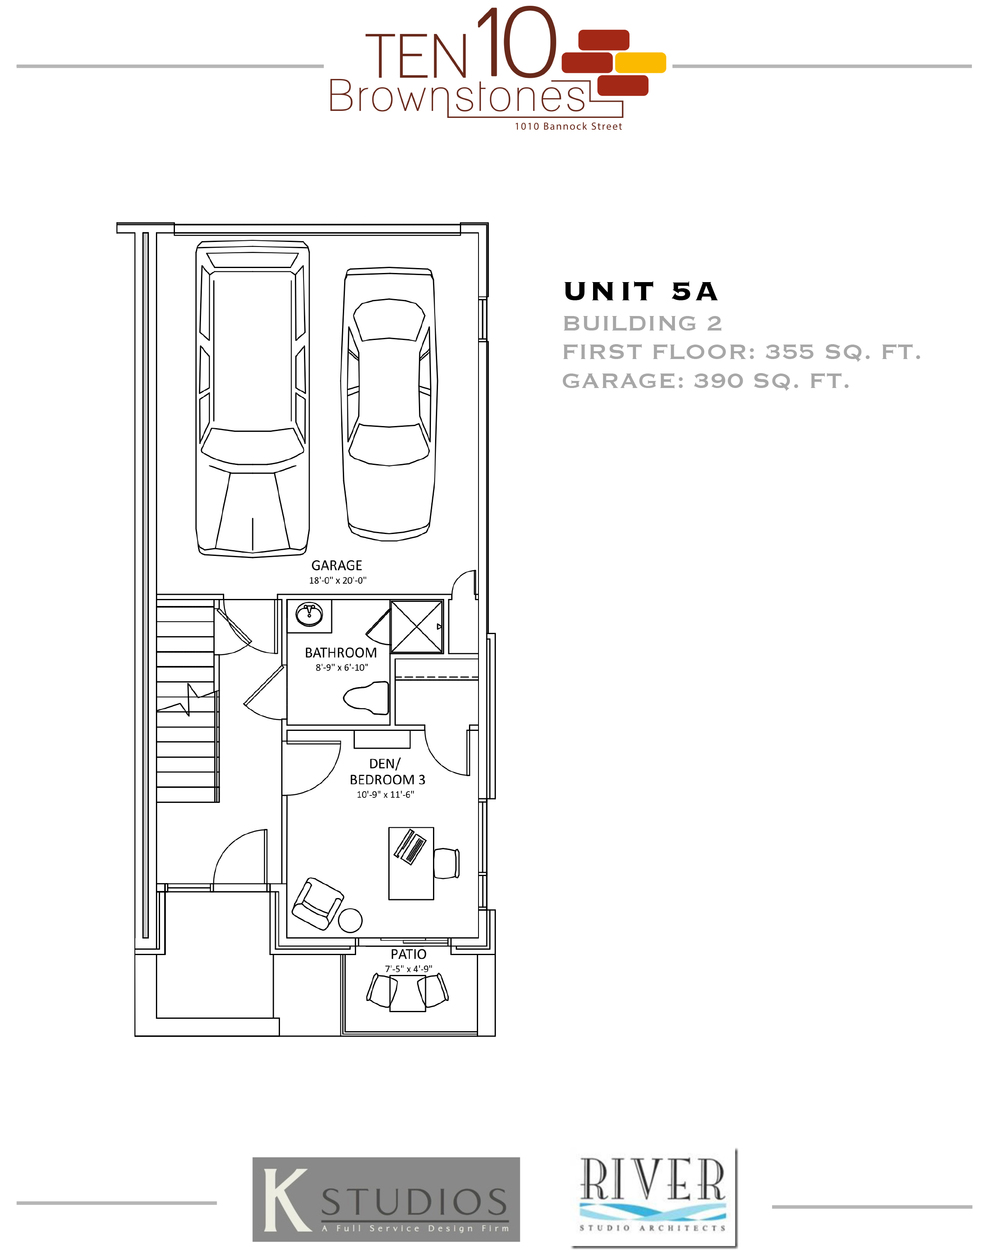 Click image to view & download Unit 5A floor plan